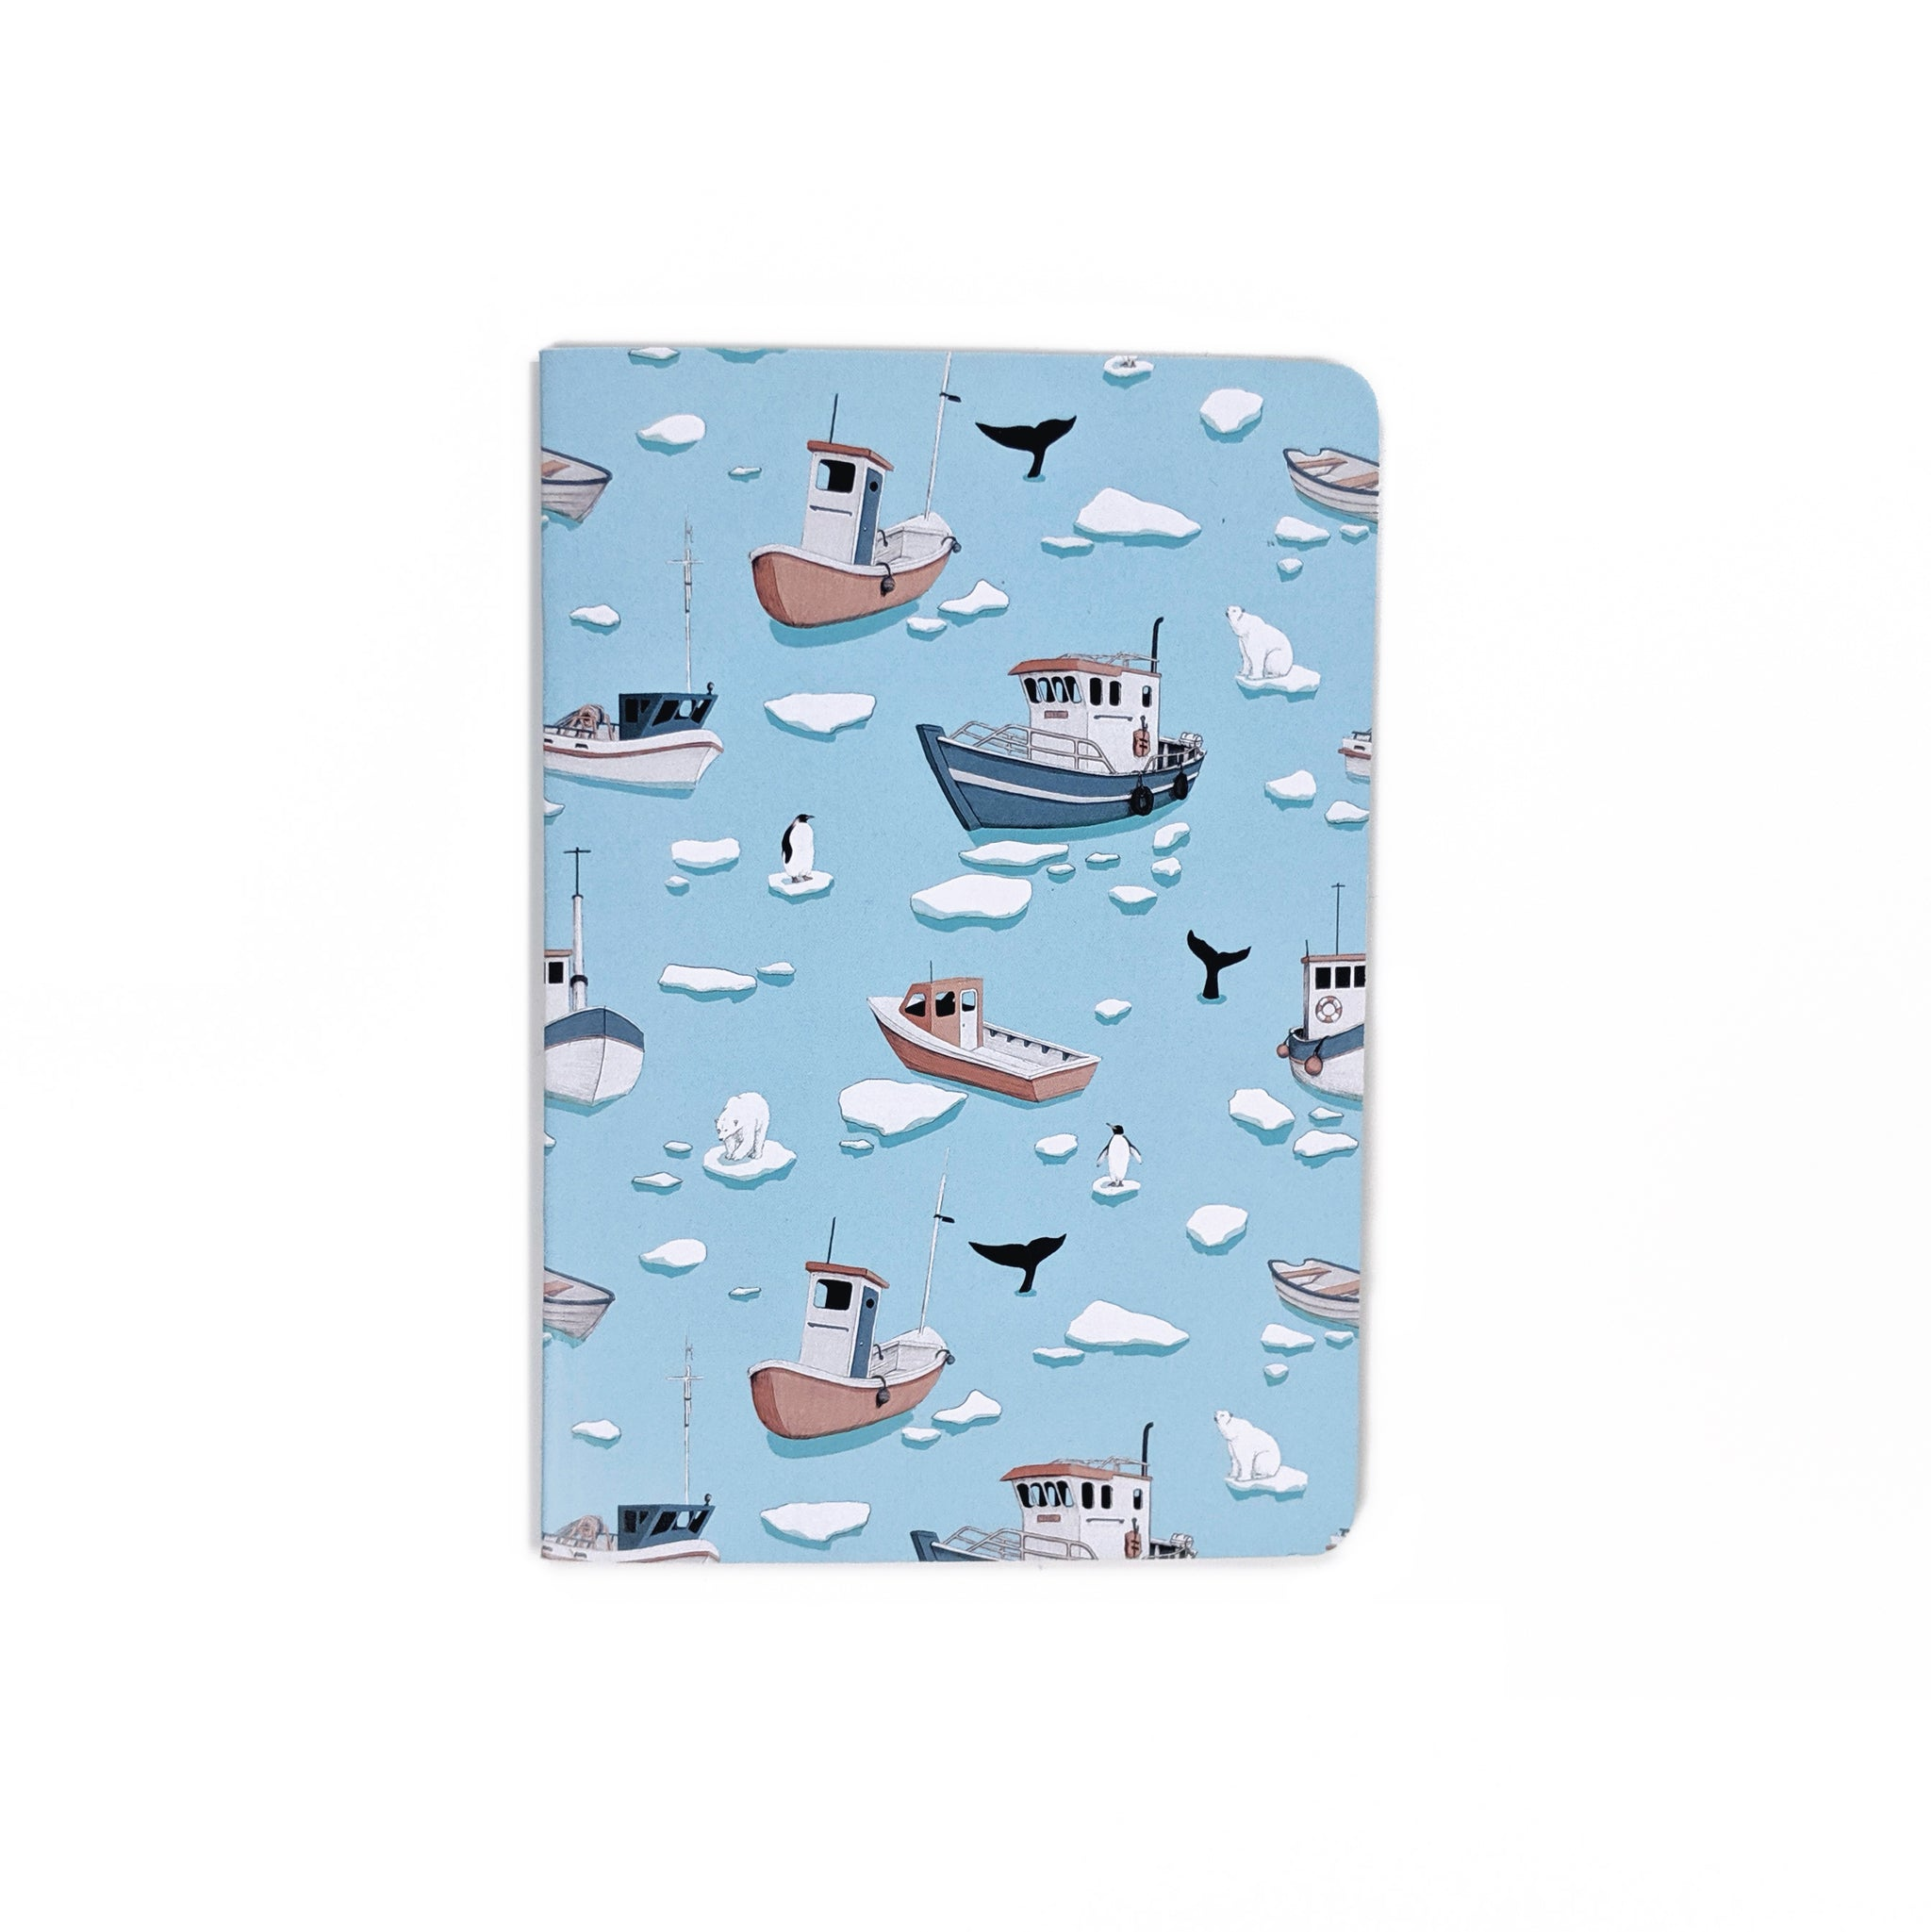 arctic ocean boats and icebergs mini notebook